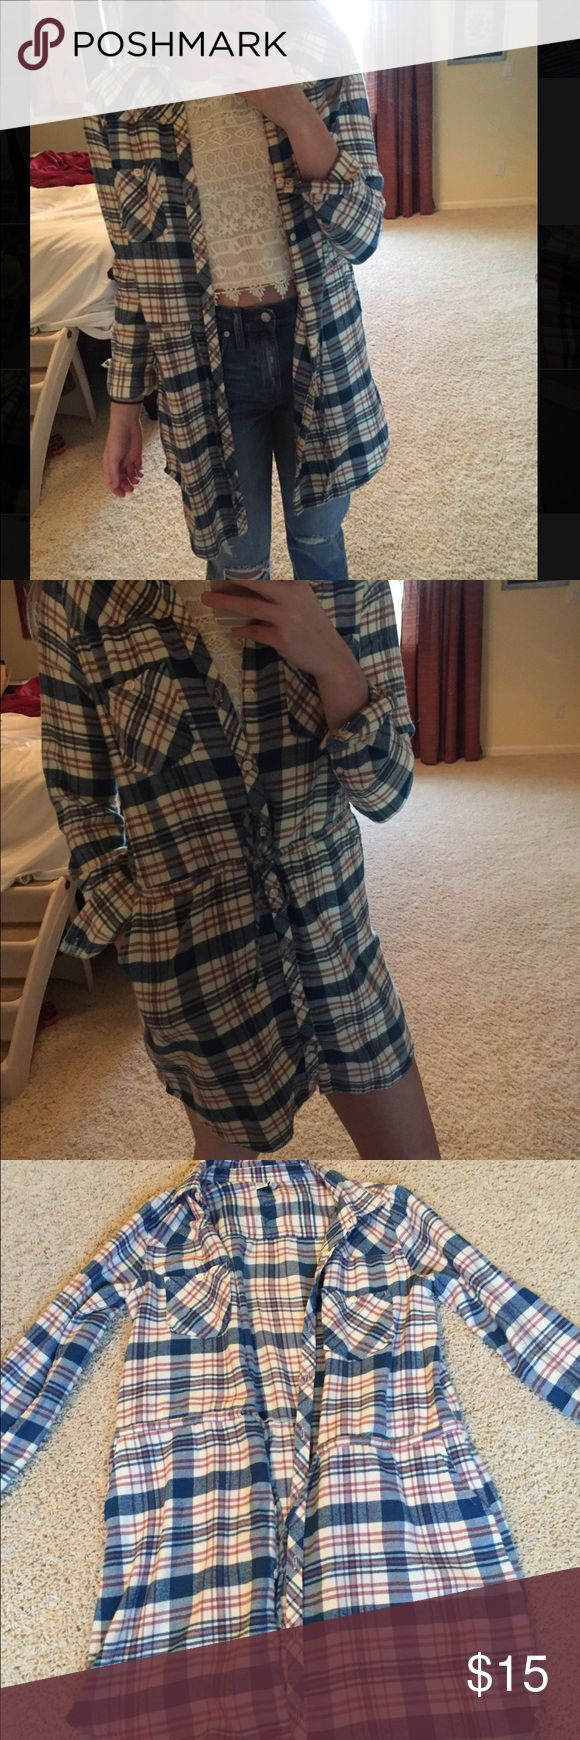 Flannel Dress size medium Super cute flannel material dress/jacket. Can be worn unbuttoned with a tee or buttoned up as a dress. Only worn once or twice. Element Tops Button Down Shirts